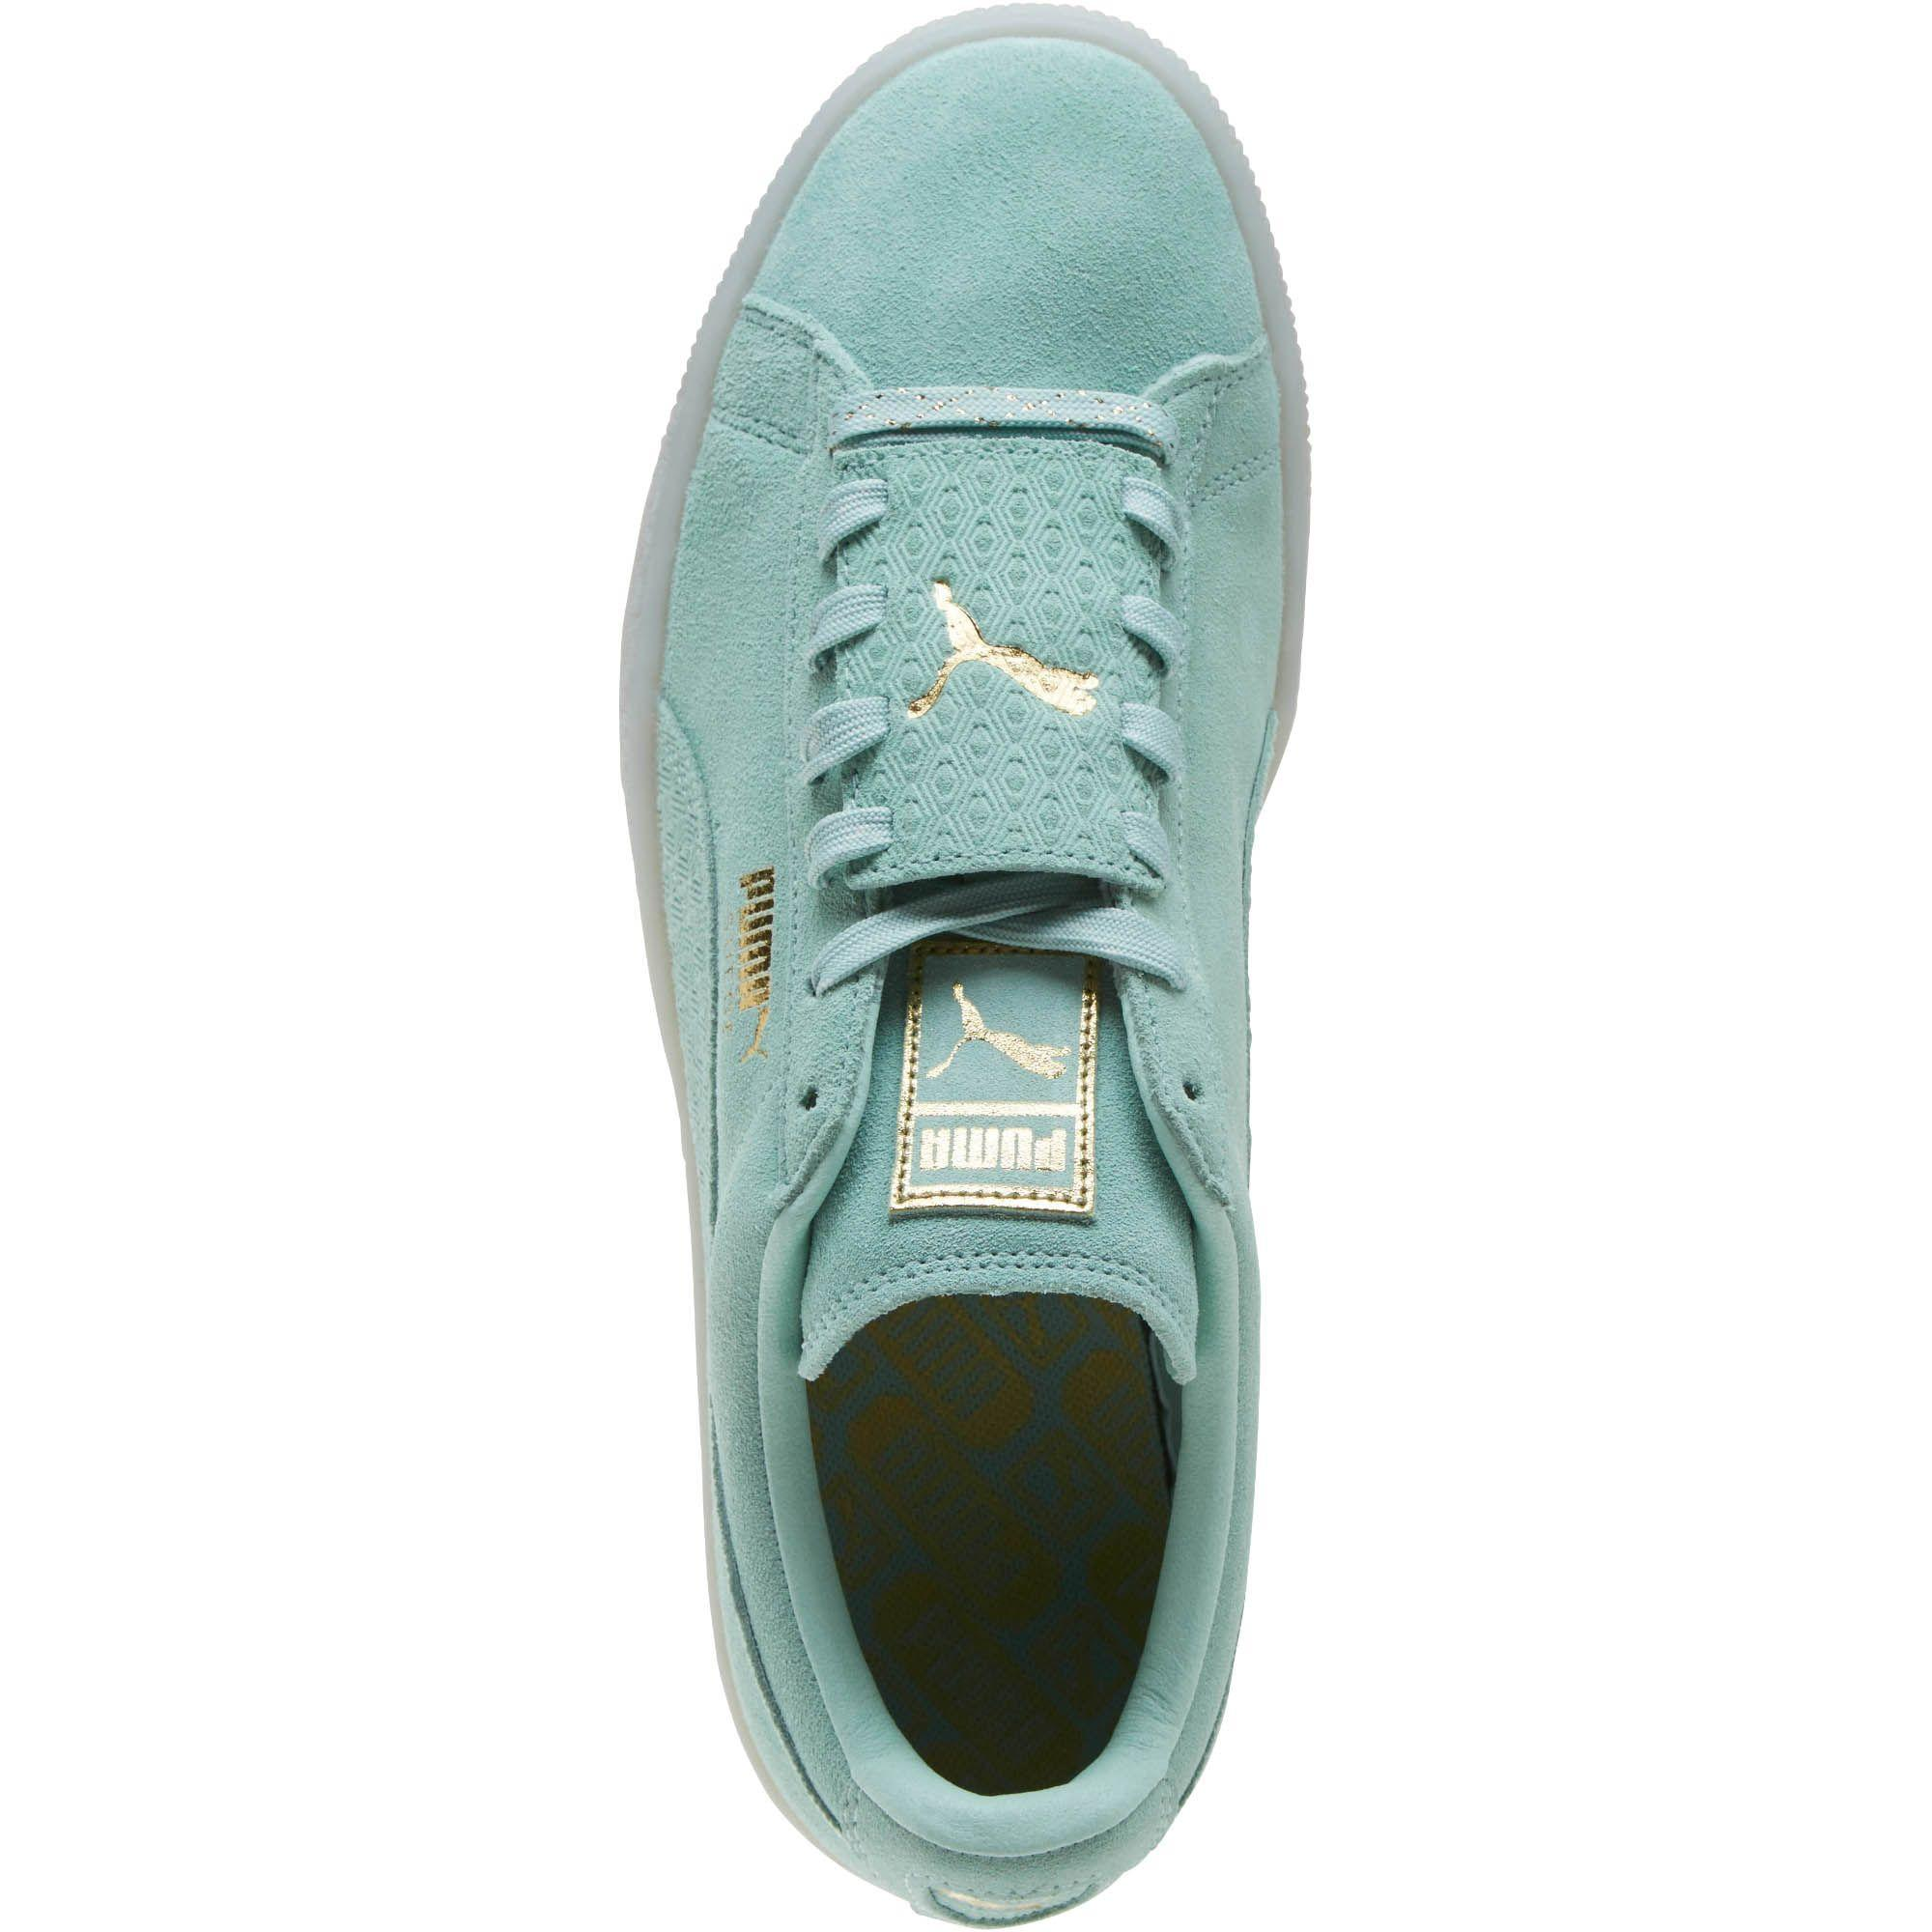 Lyst - PUMA Suede Epic Remix Men s Sneakers in Green for Men f072a7322